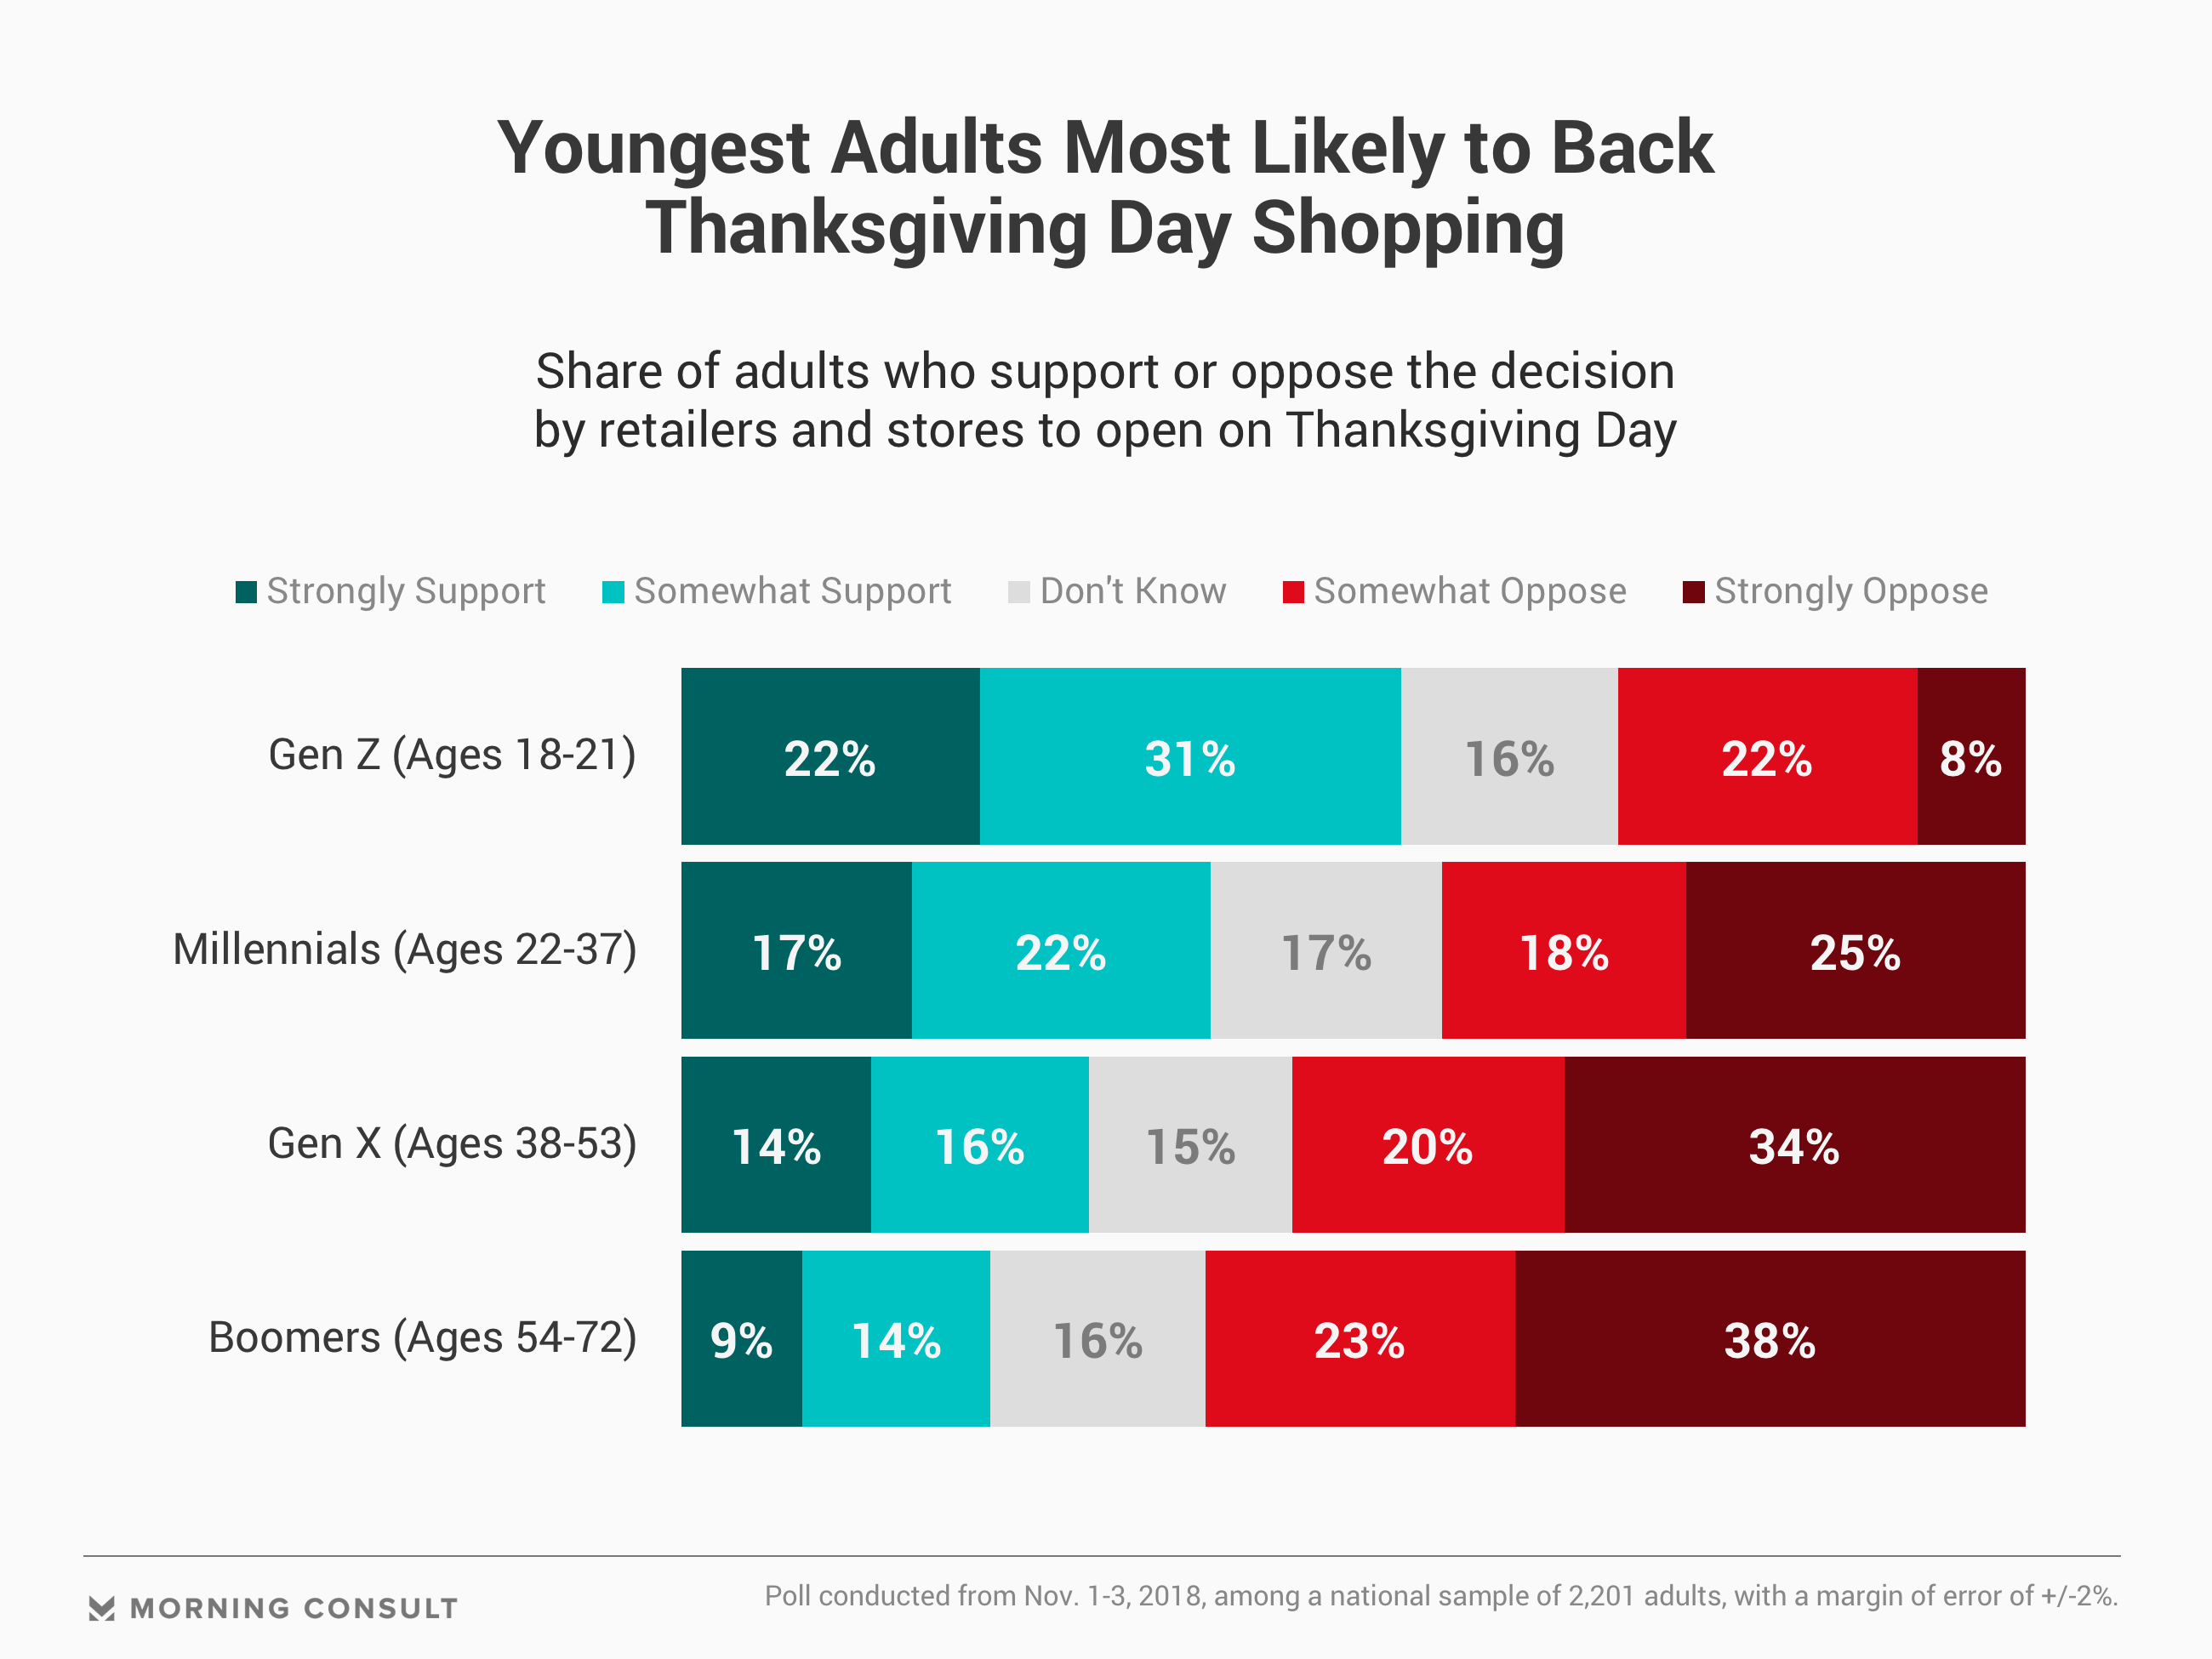 Most Americans Want Thanksgiving to be a Holiday From Shopping